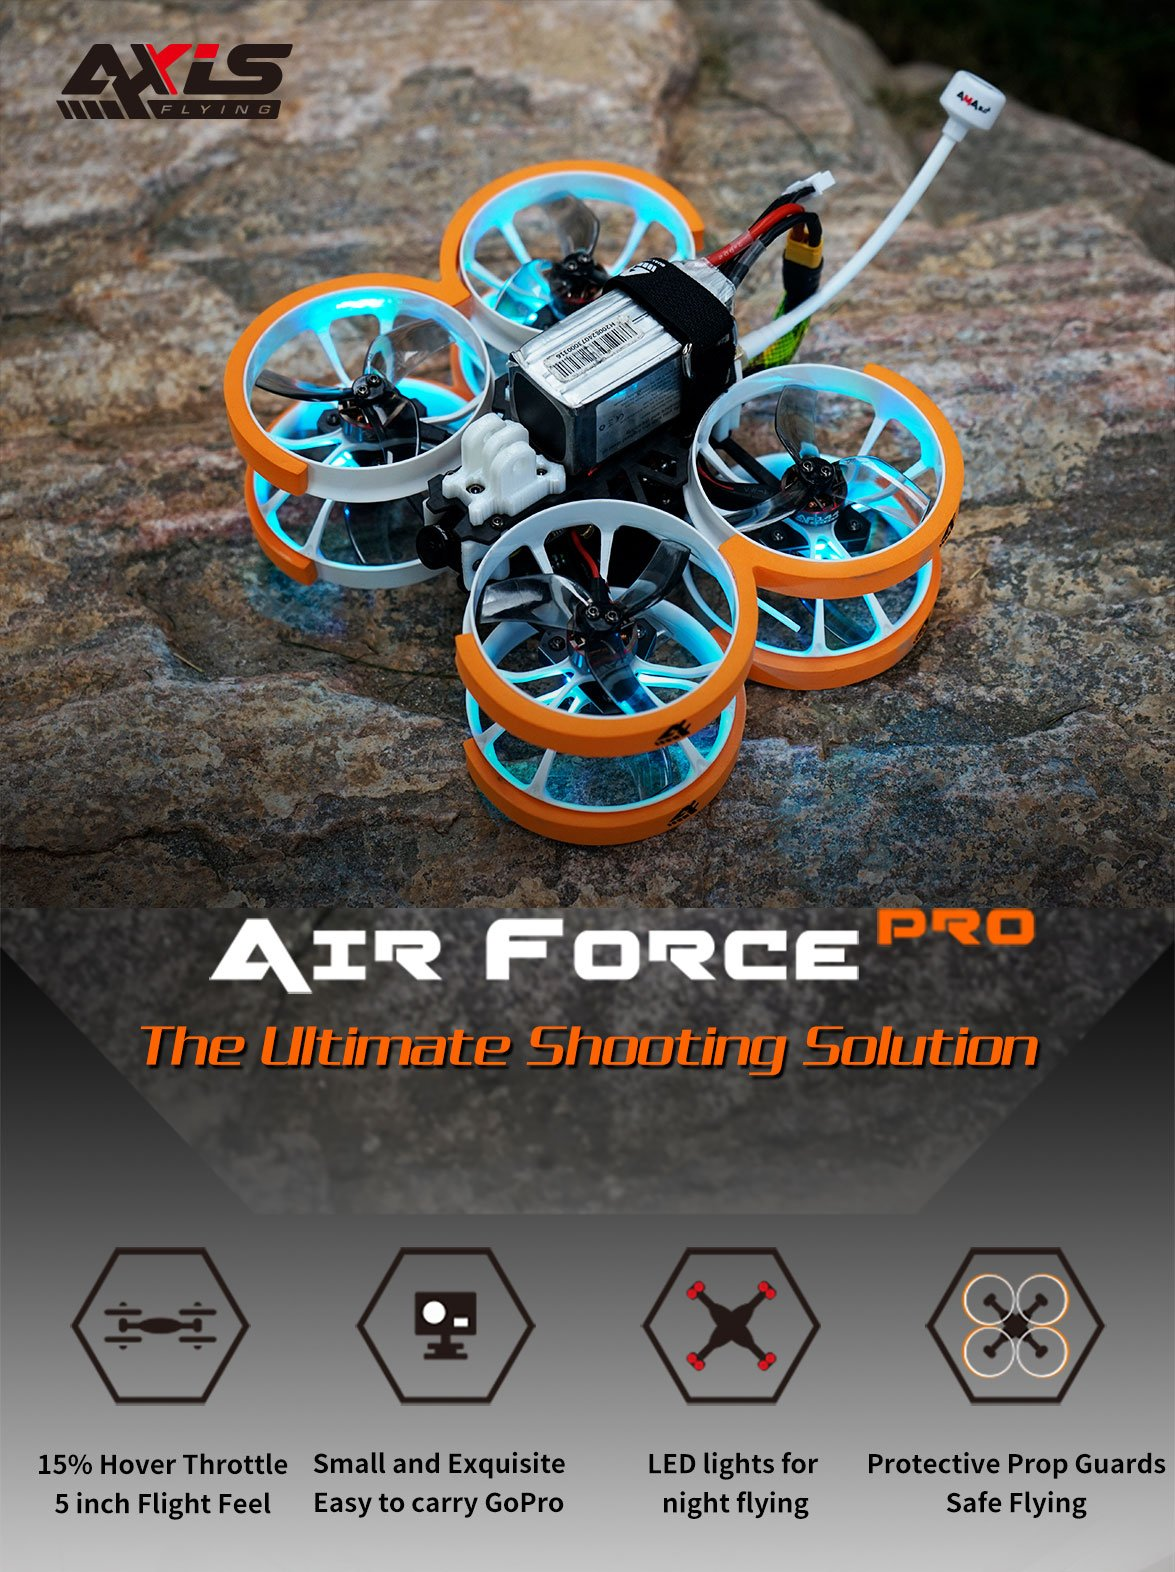 Axisflying airforce Pro banner